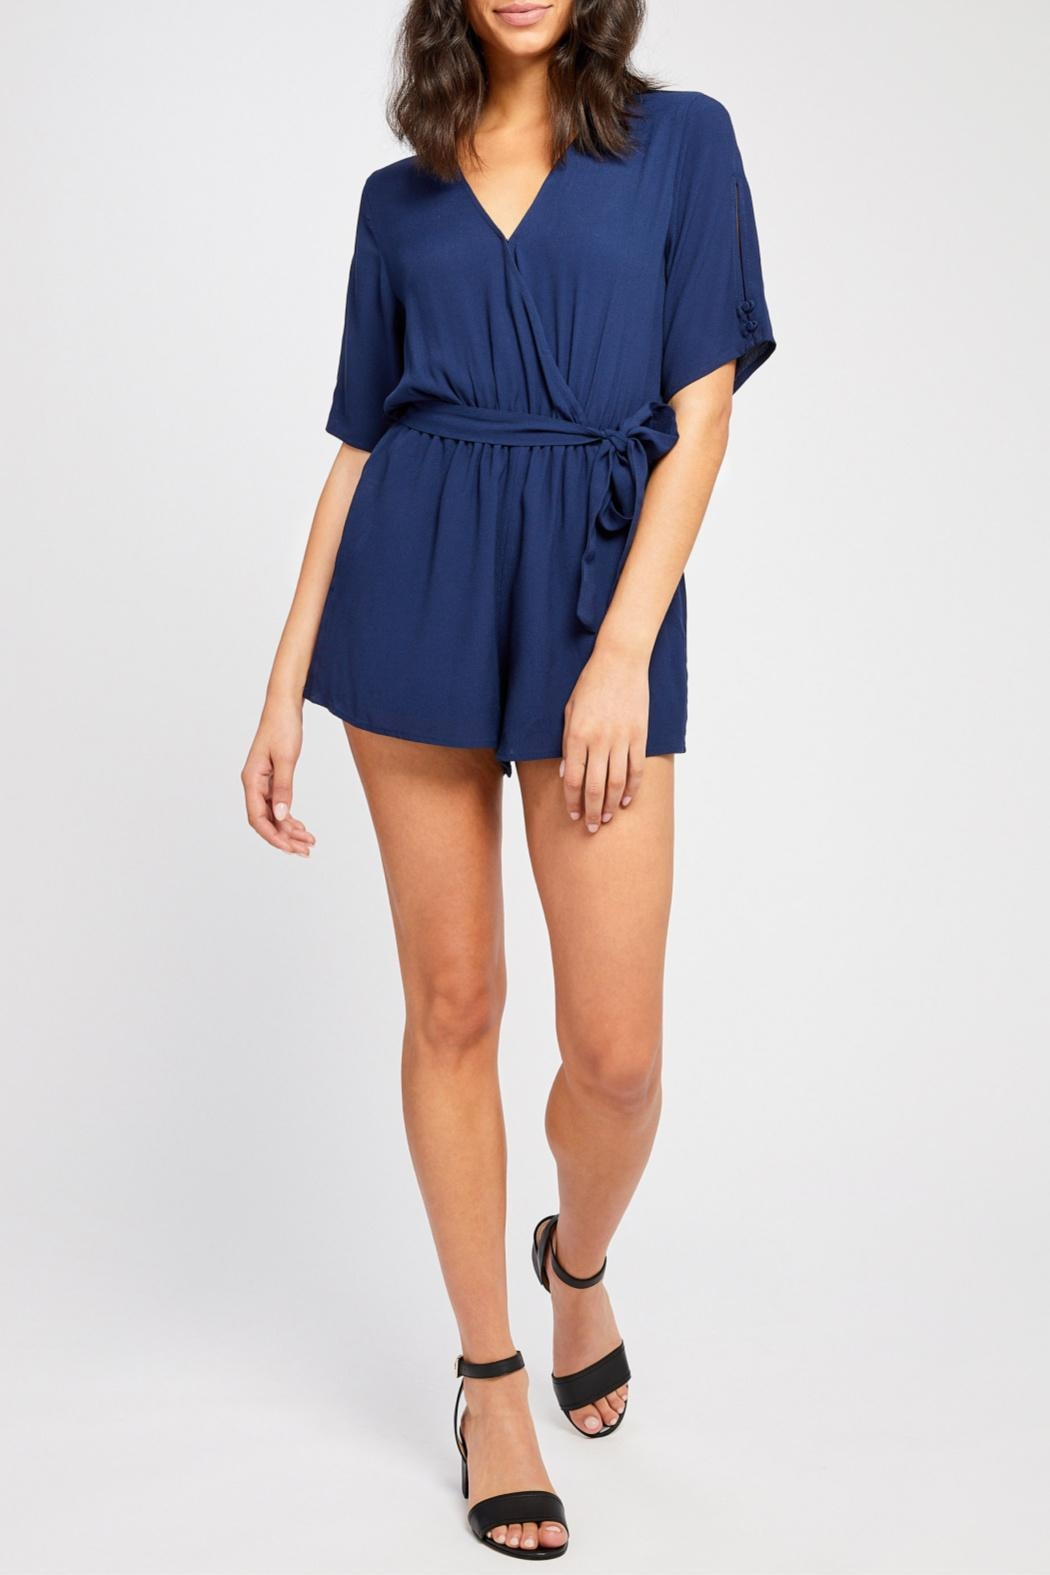 Gentle Fawn Short Sleeve Romper - Front Cropped Image